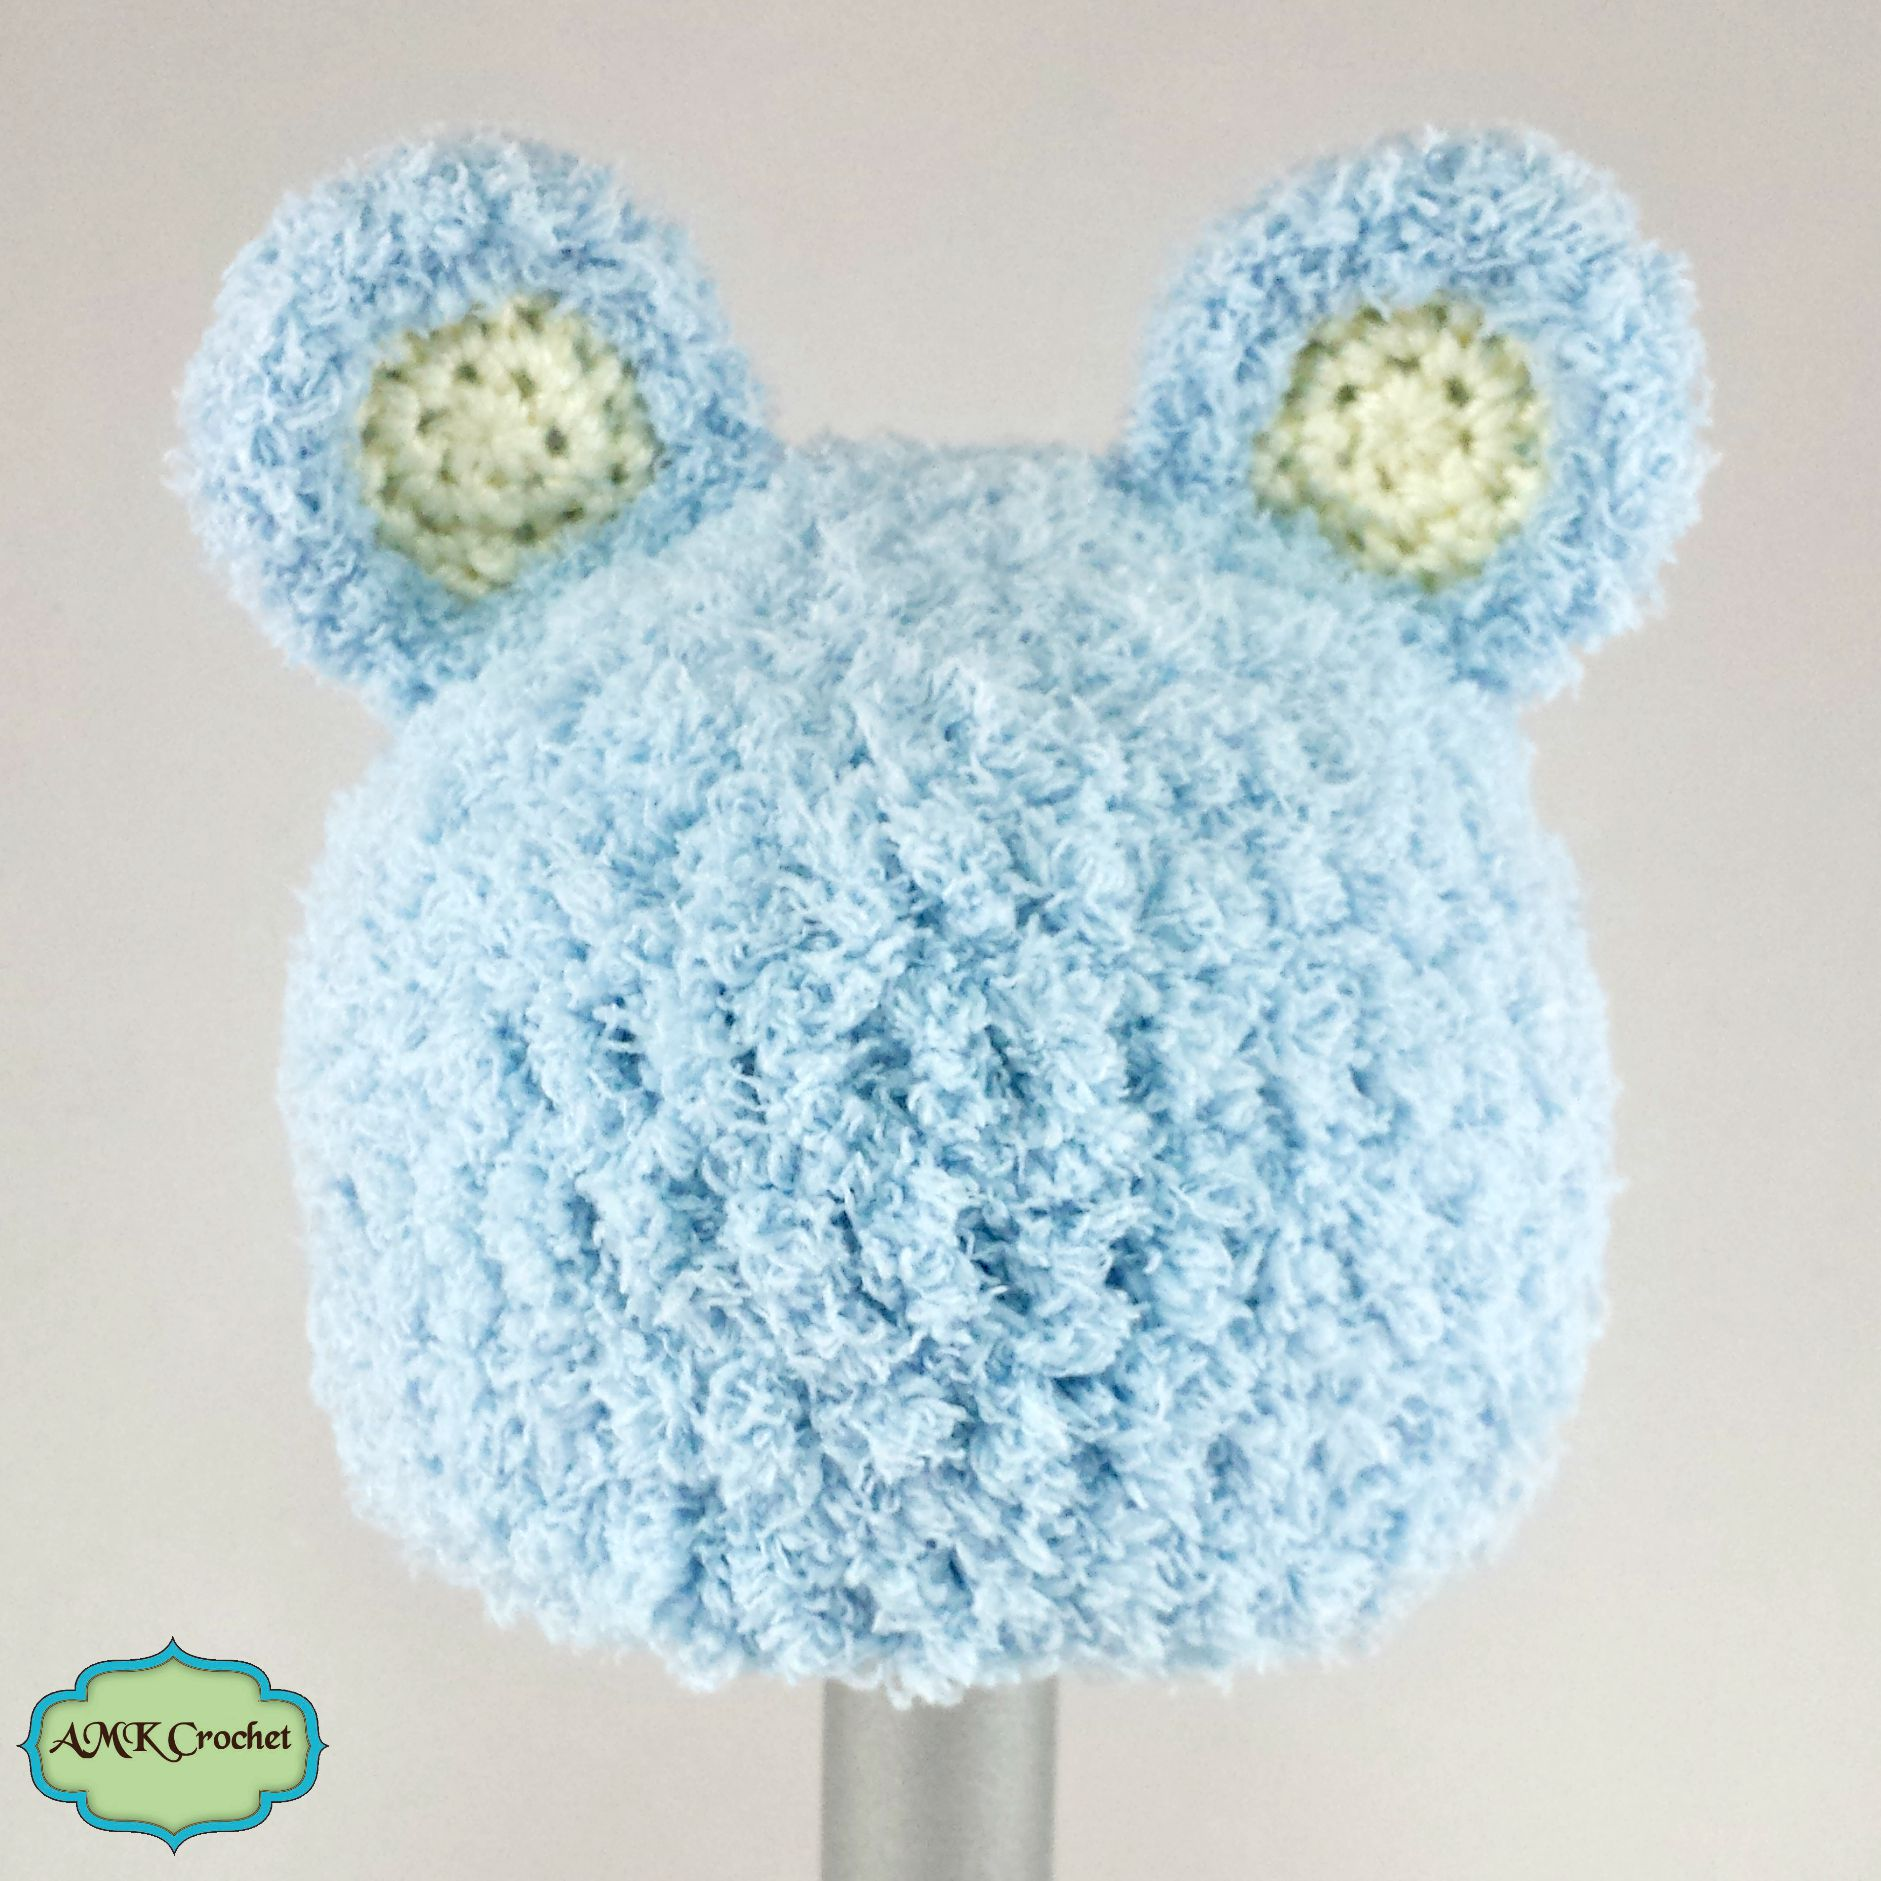 Free Crochet Patterns Using Bulky Weight Yarn : Crochet Tips, Tricks, Photo Tutorials, and Crochet Patterns